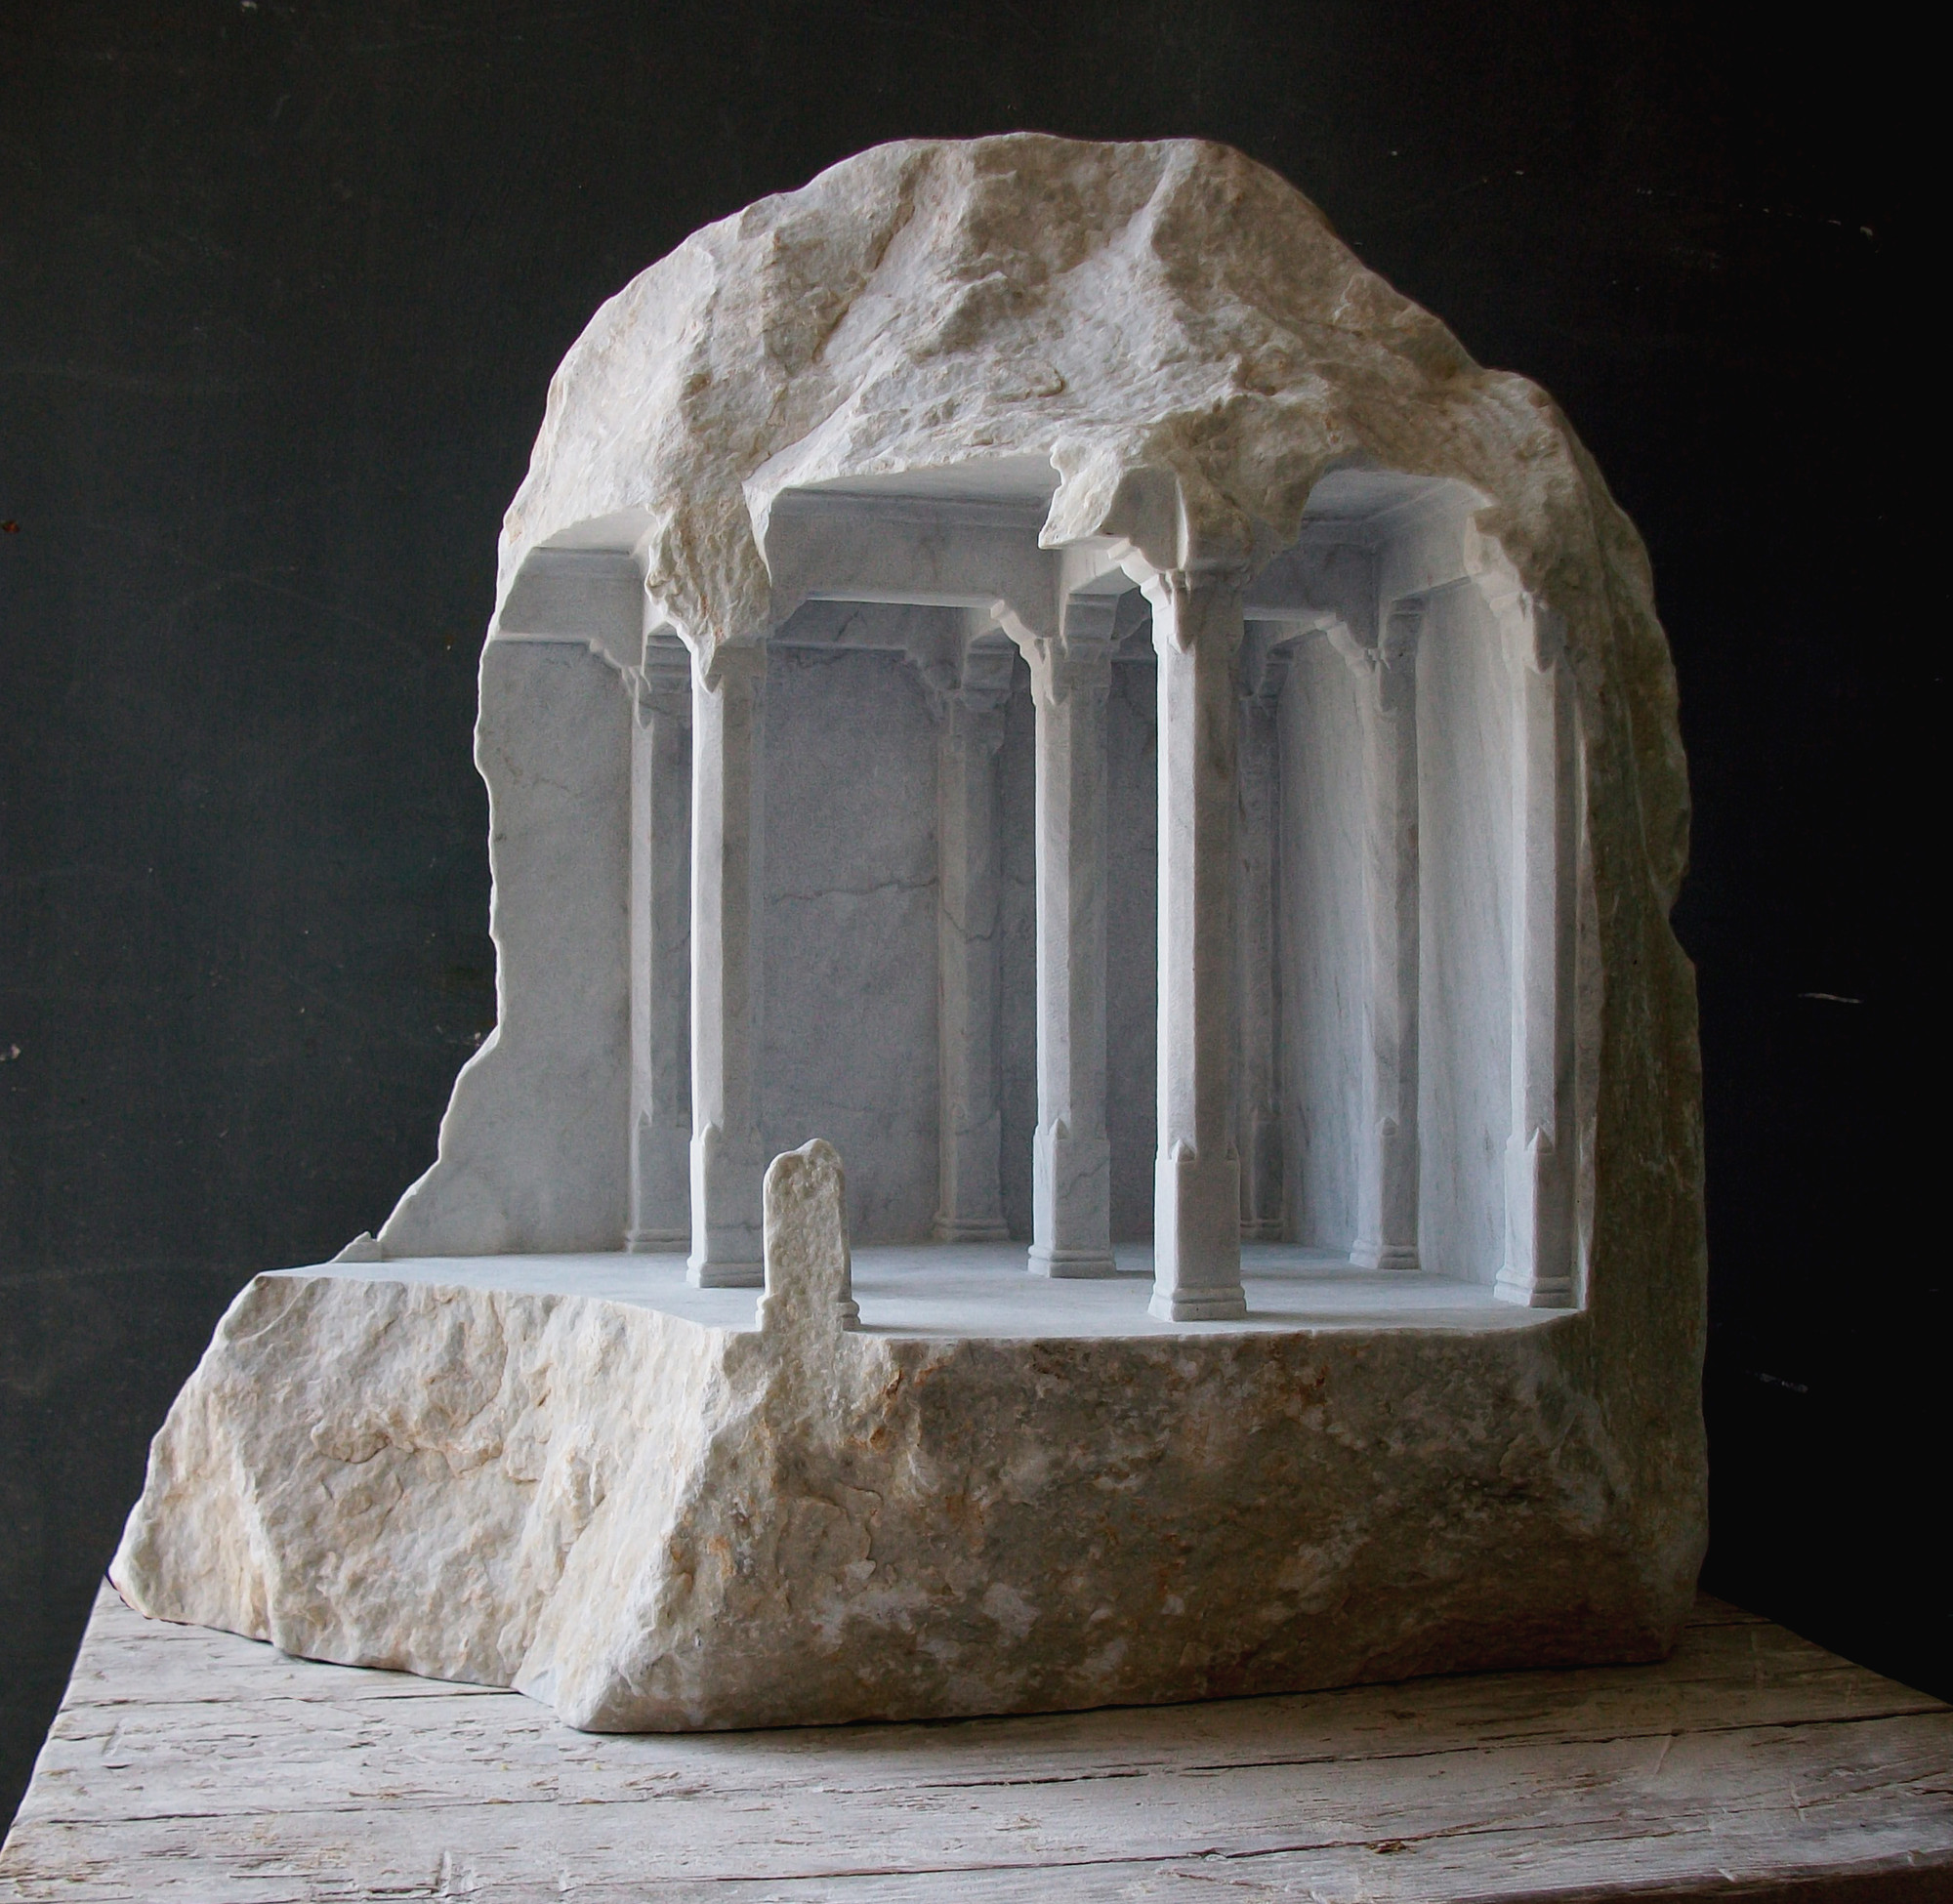 Gallery of miniature spaces carved from stone